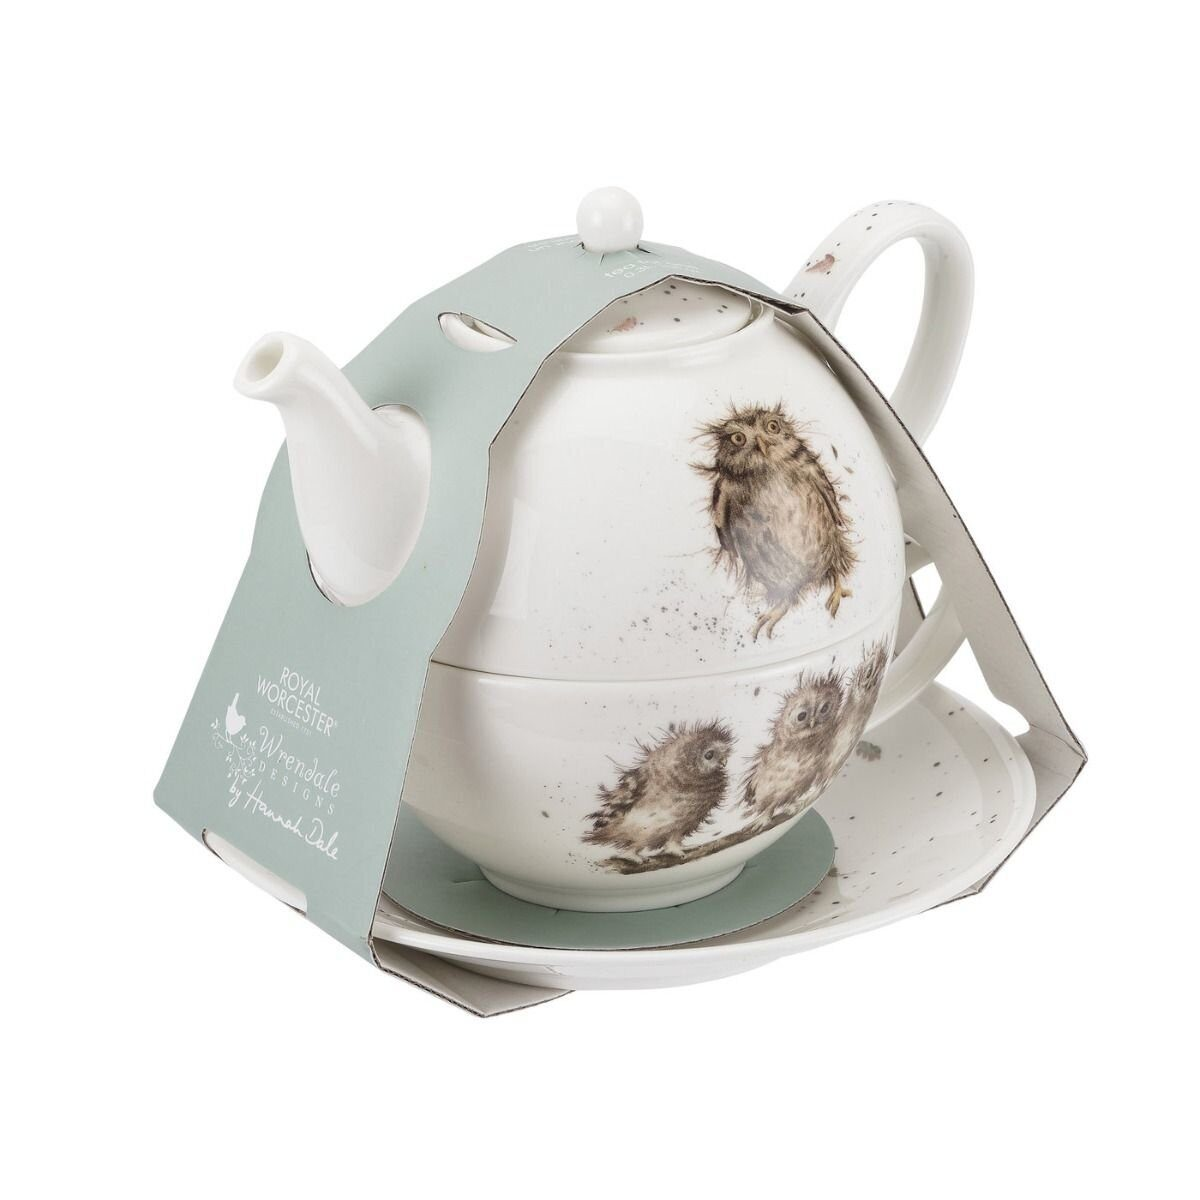 Royal Worcester Wrendale Designs Owl Tea For One with Saucer);